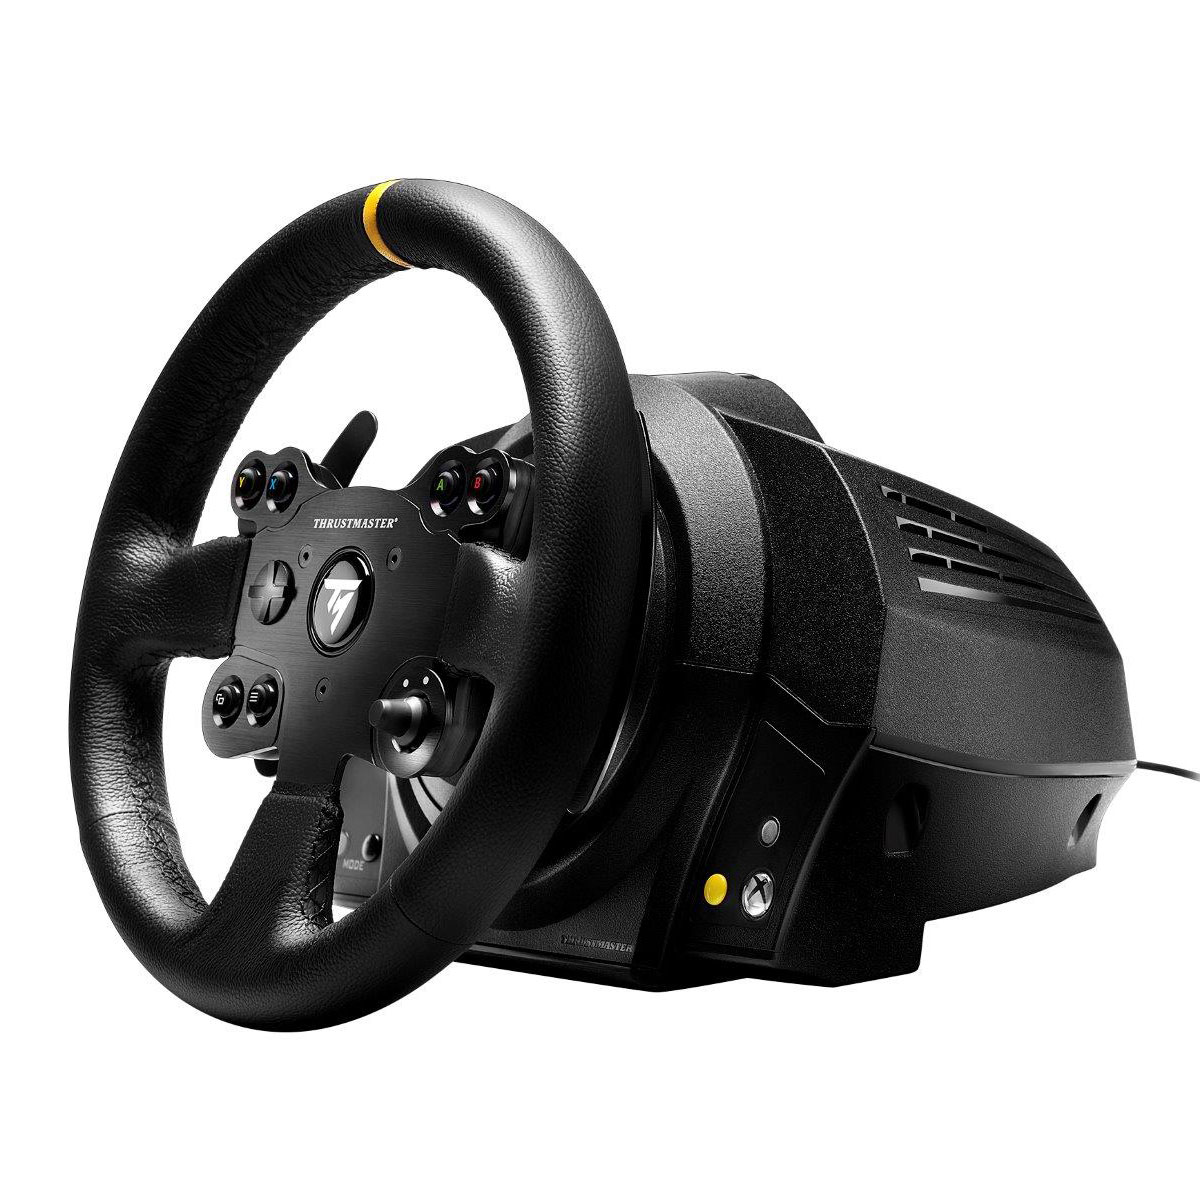 thrustmaster tx racing wheel leather edition pas cher. Black Bedroom Furniture Sets. Home Design Ideas